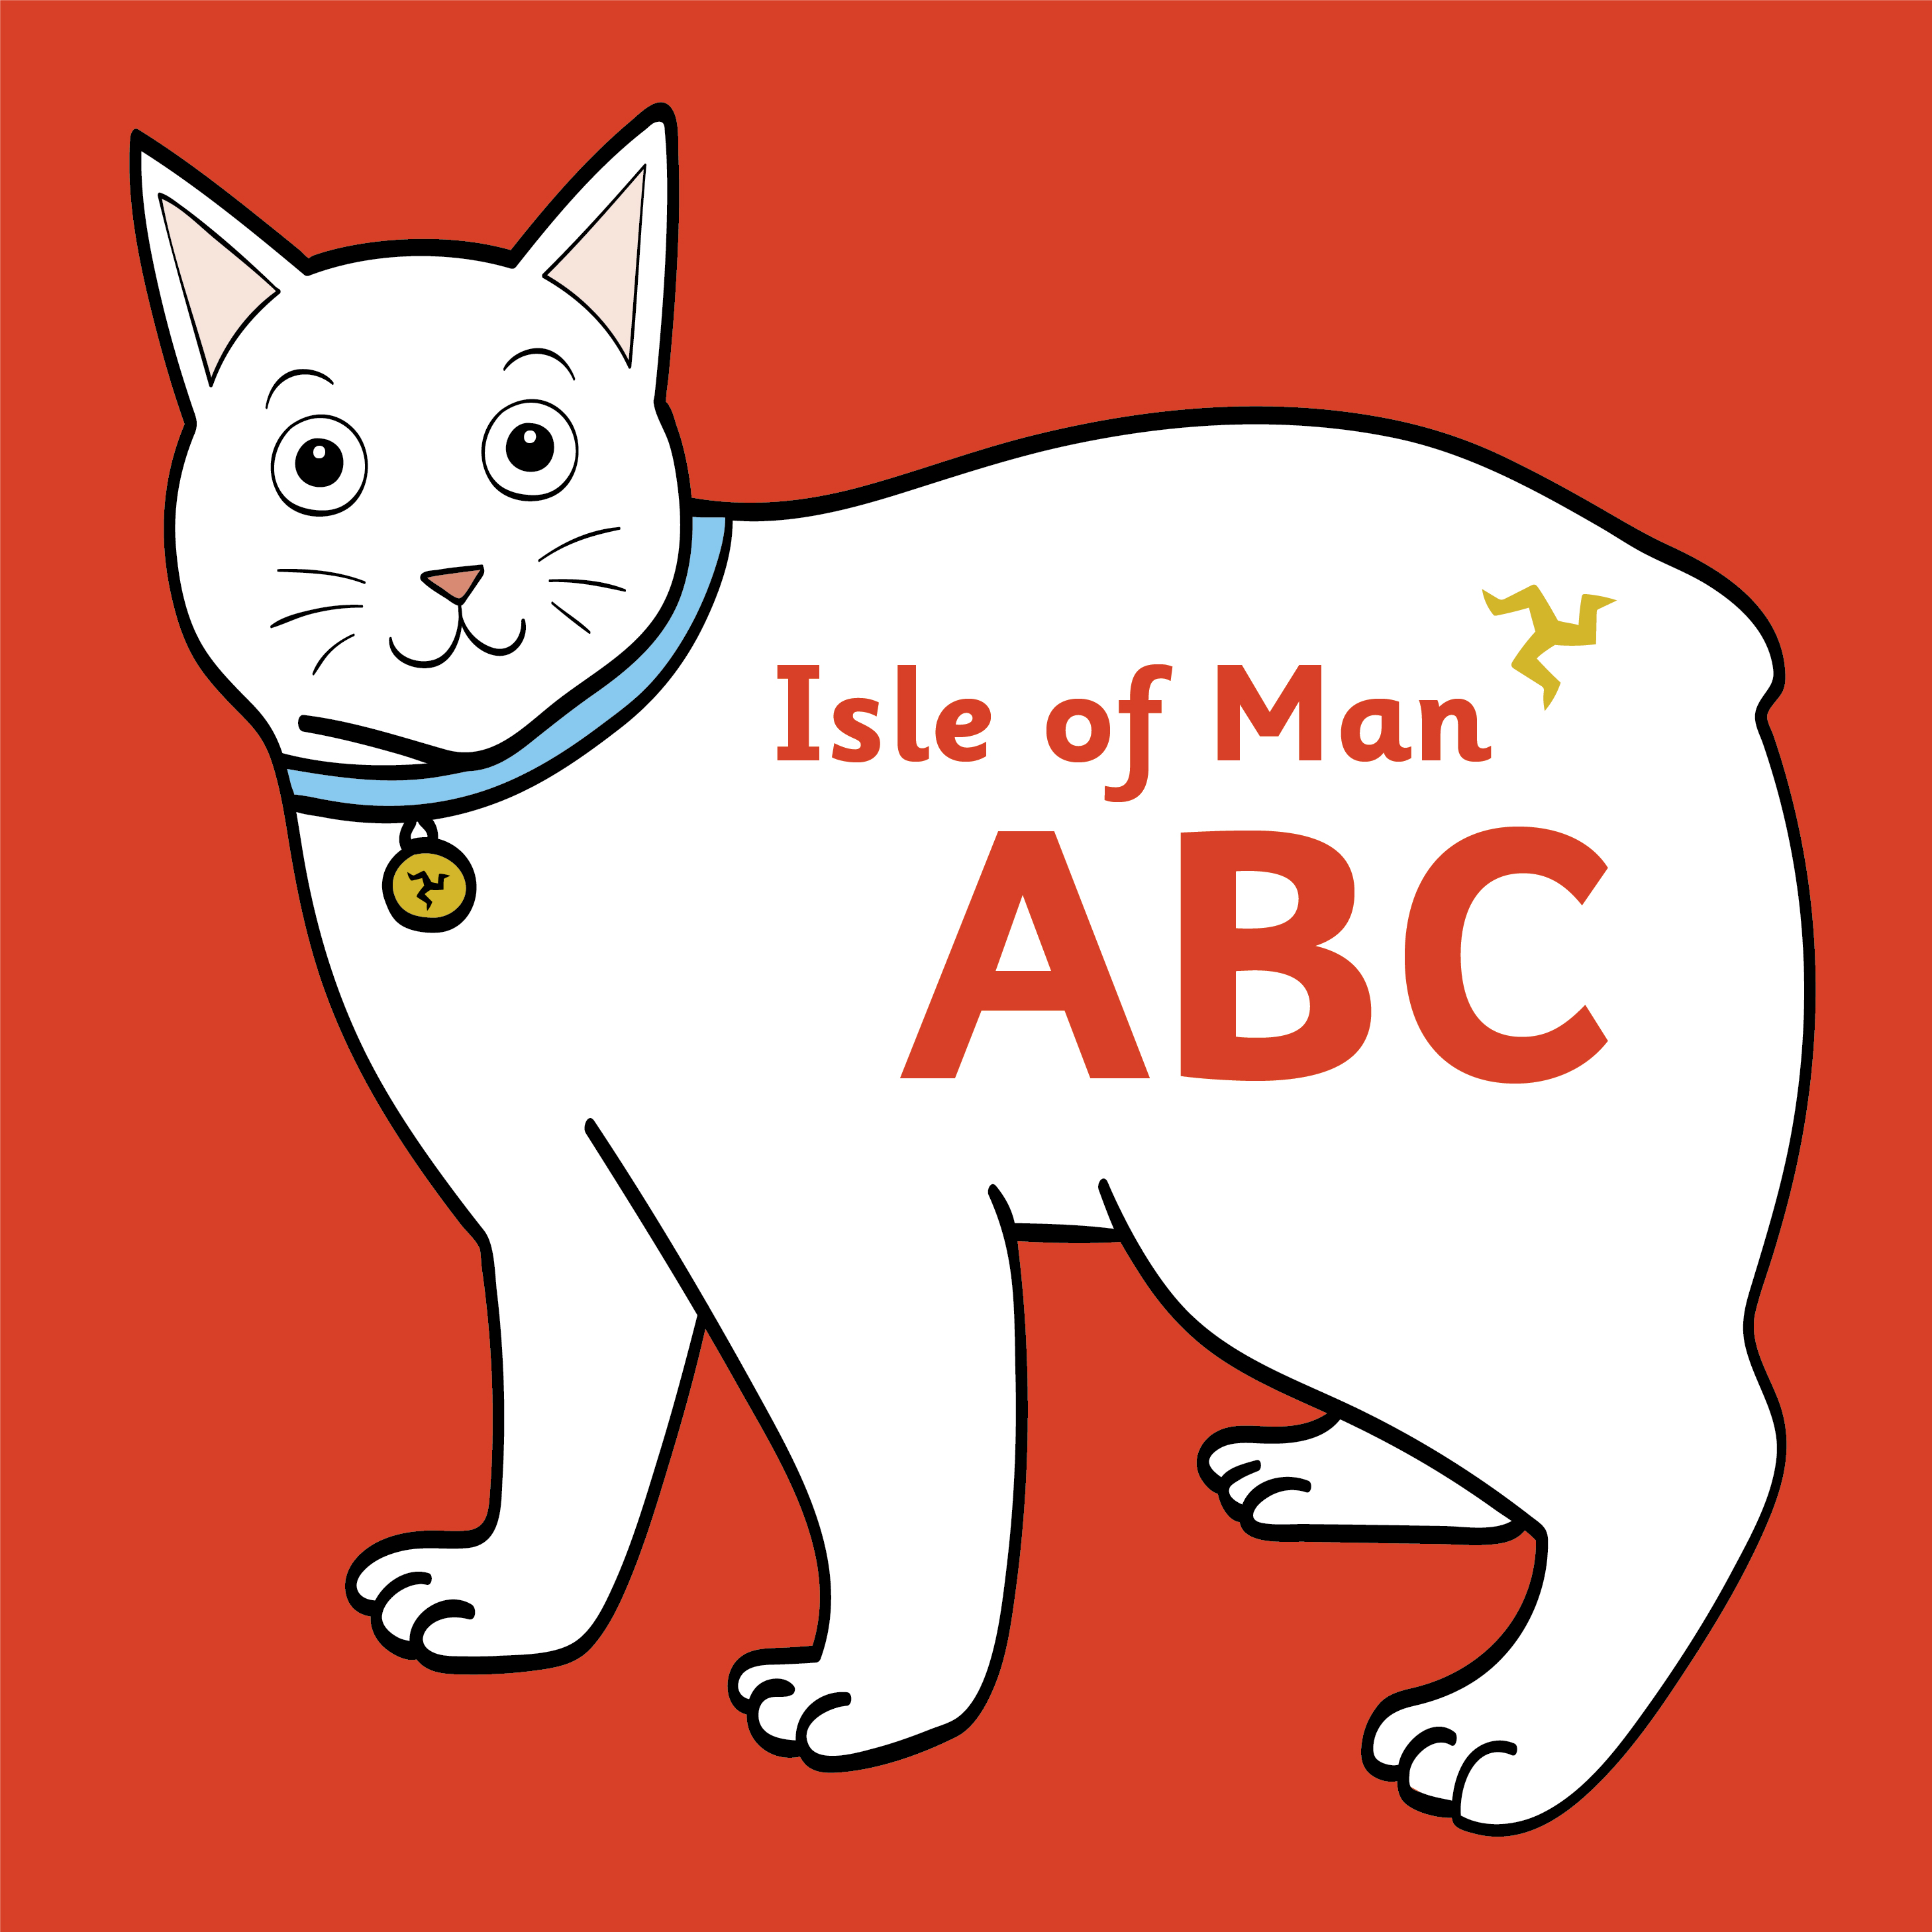 Isle of Man ABC logo